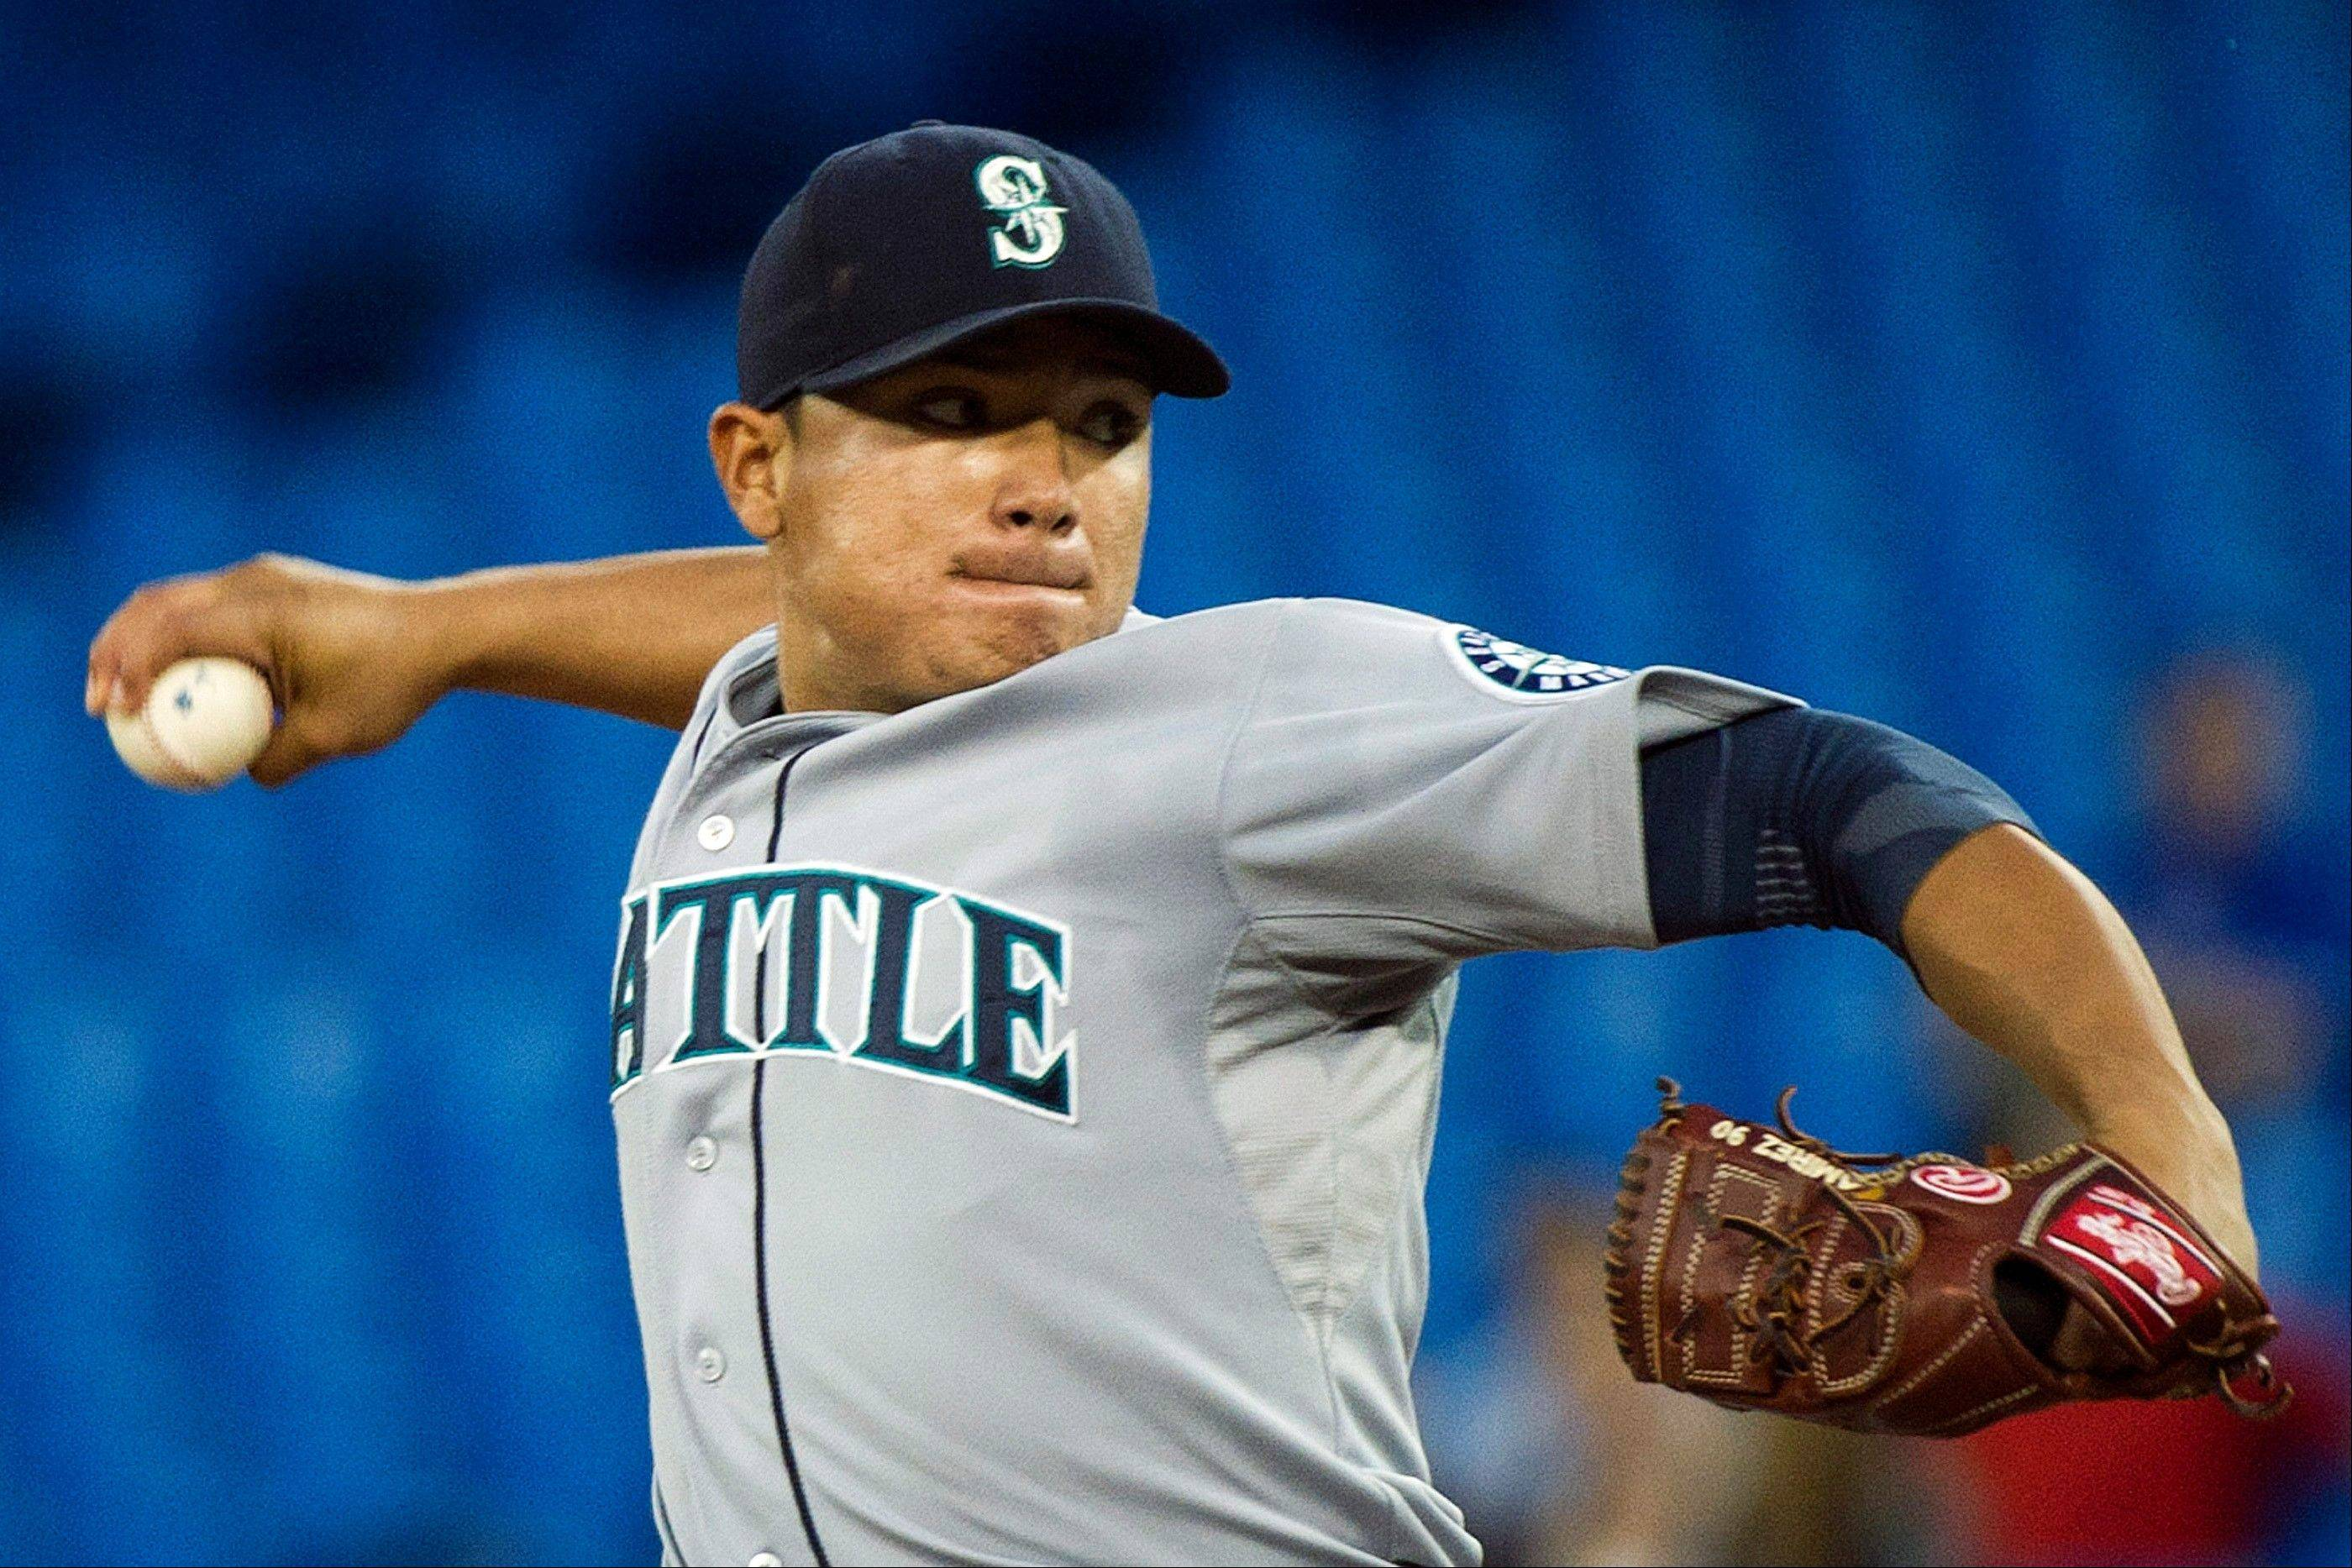 Seattle Mariners starting pitcher Erasmo Ramirez allowed two runs on six hits Tuesday night in Toronto.